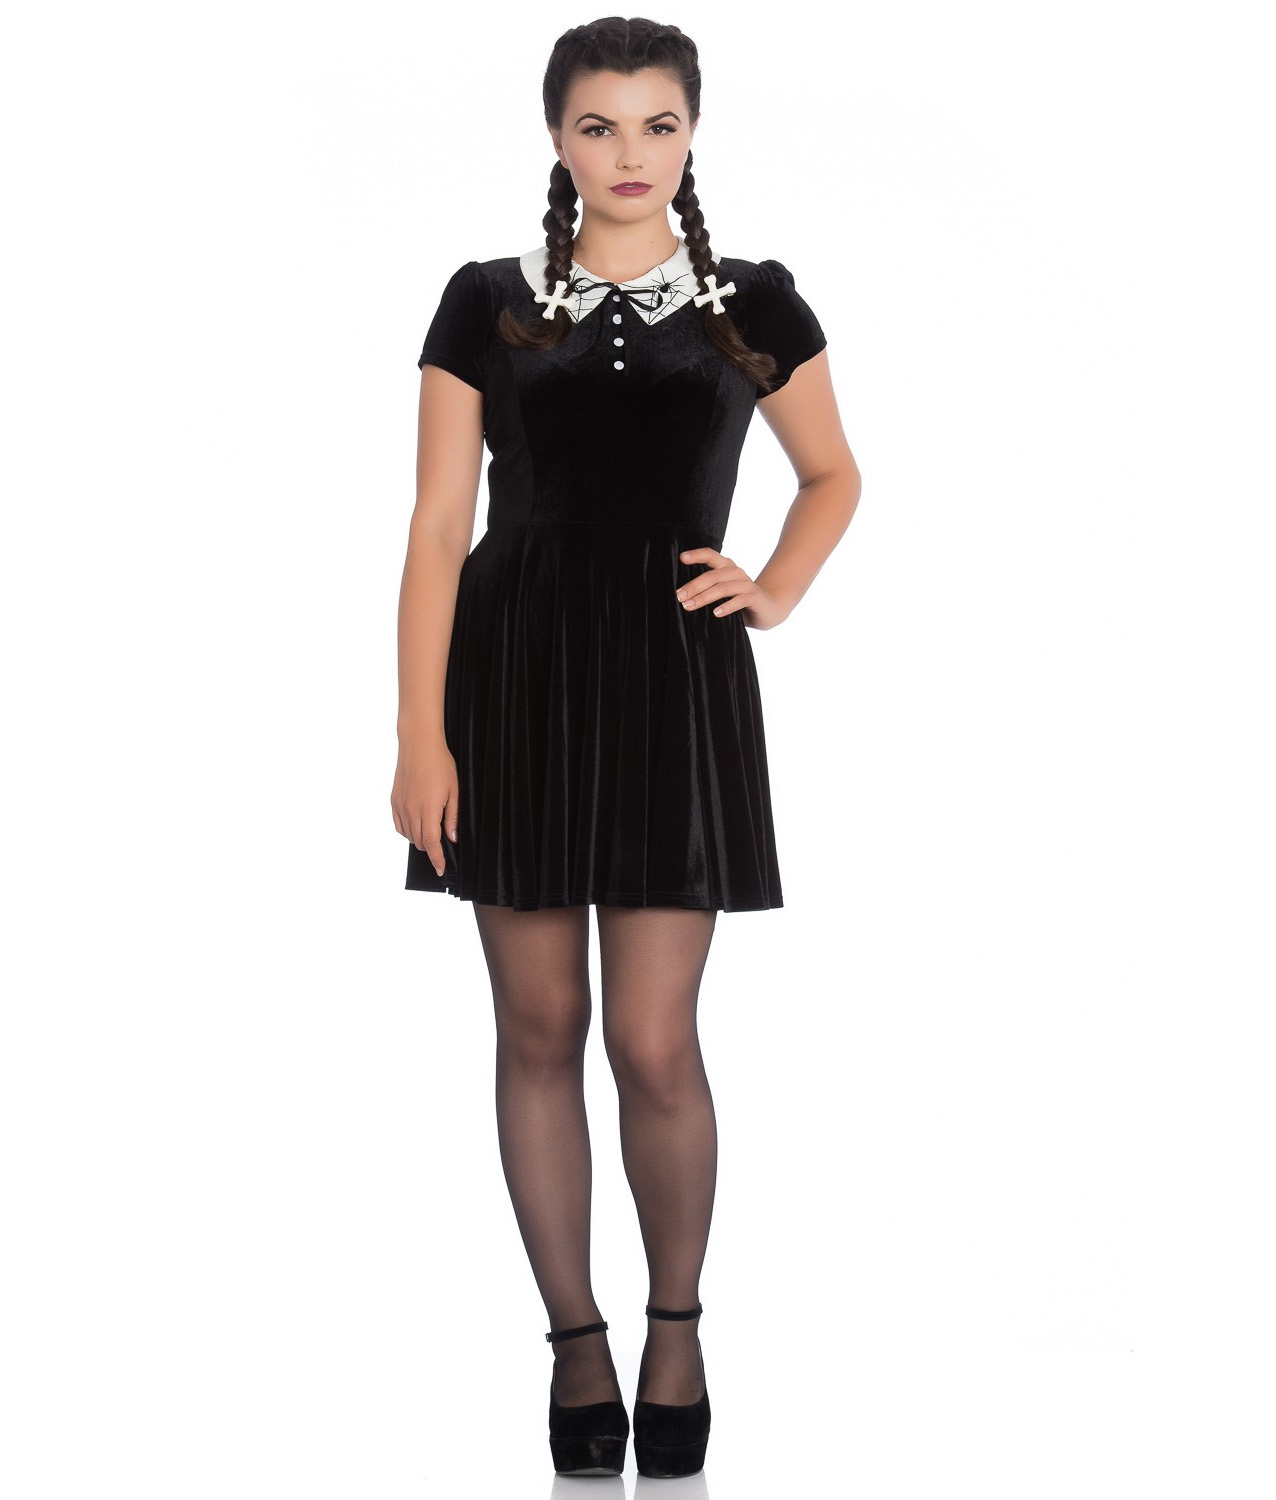 Hell-Bunny-Gothic-Mini-Skater-Dress-MISS-MUFFET-Spiders-Black-Velvet-All-Sizes thumbnail 11